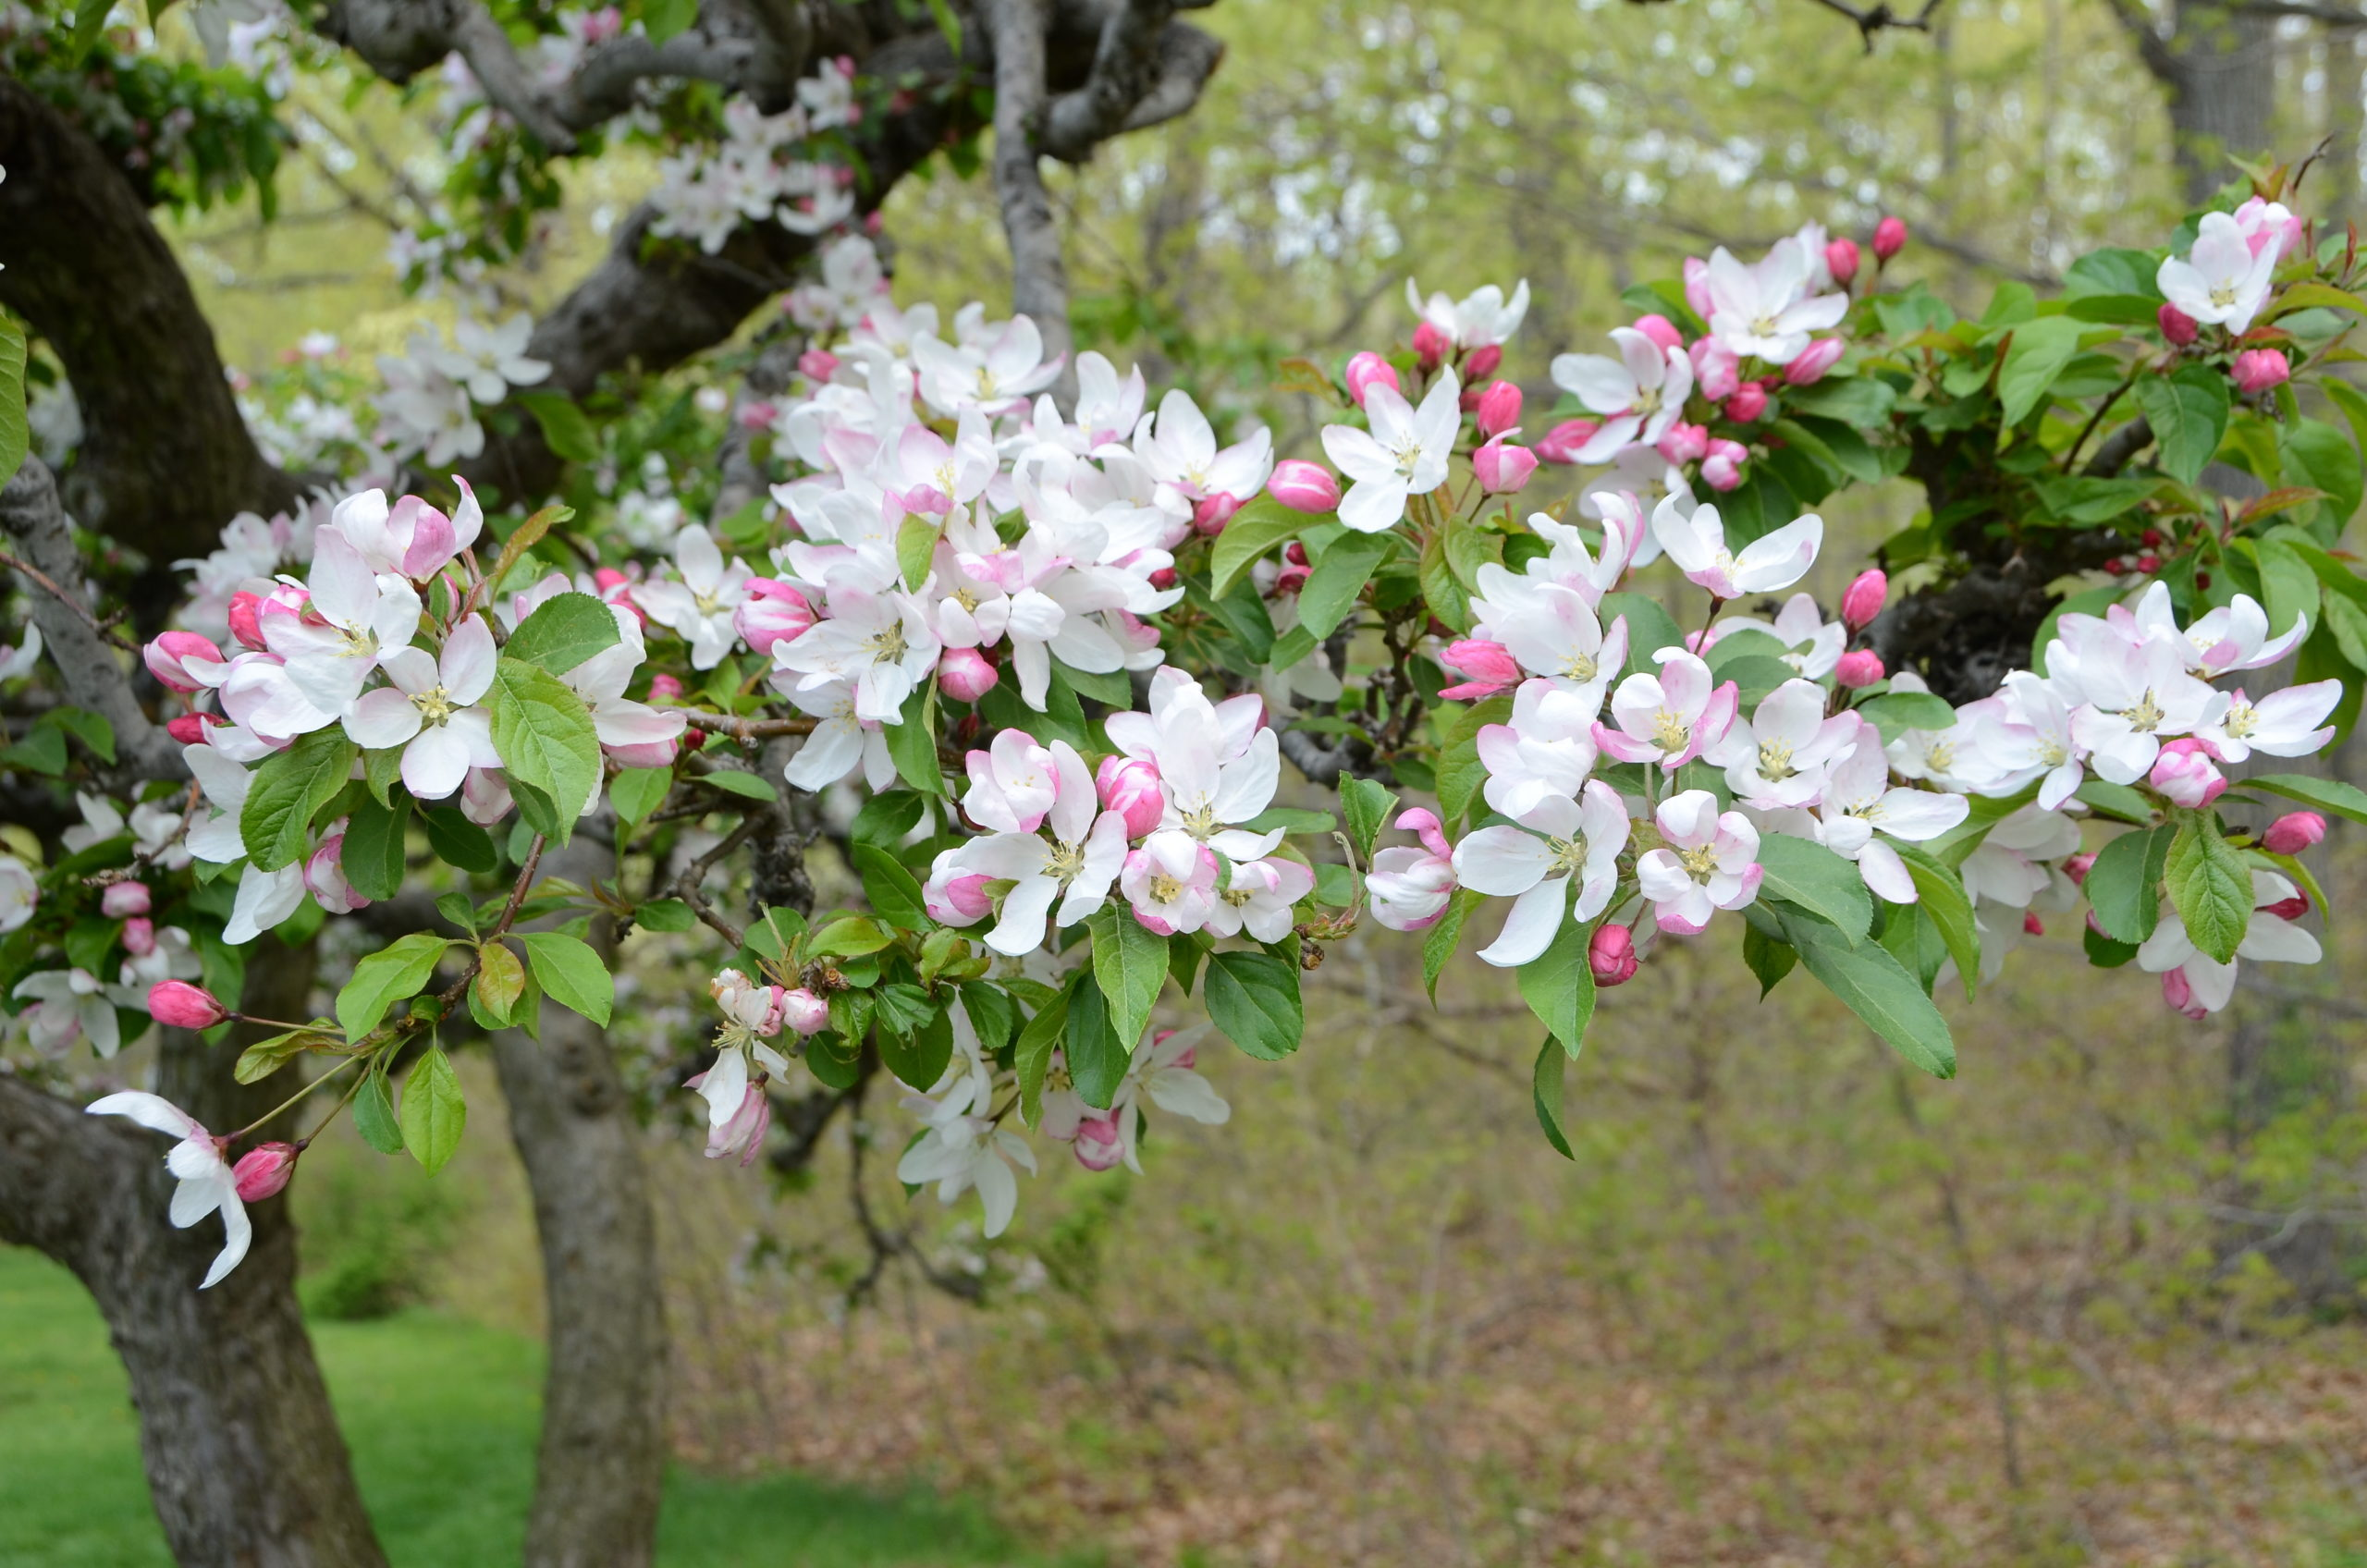 Apple and crabapple cuttings offer both mildly scented flowers and a range of colors. The widest range of colors come from the crabapple group. Long year-old stems cut for shaping and controlling fruiting on standard apple trees are great for forcing.